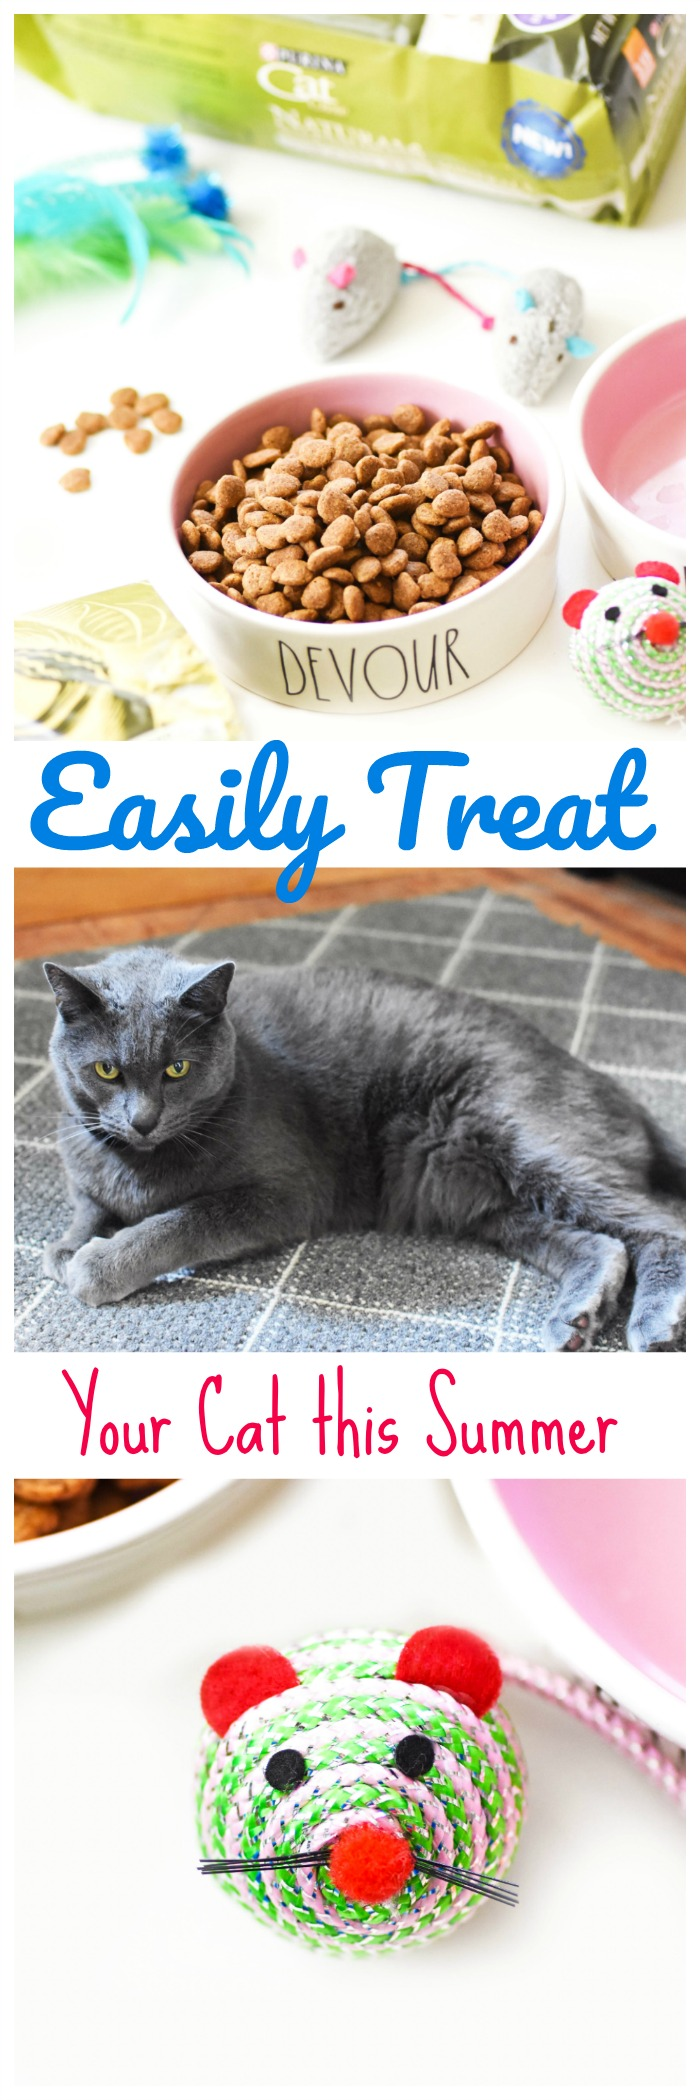 How to Easily Treat Your Cat this Summer